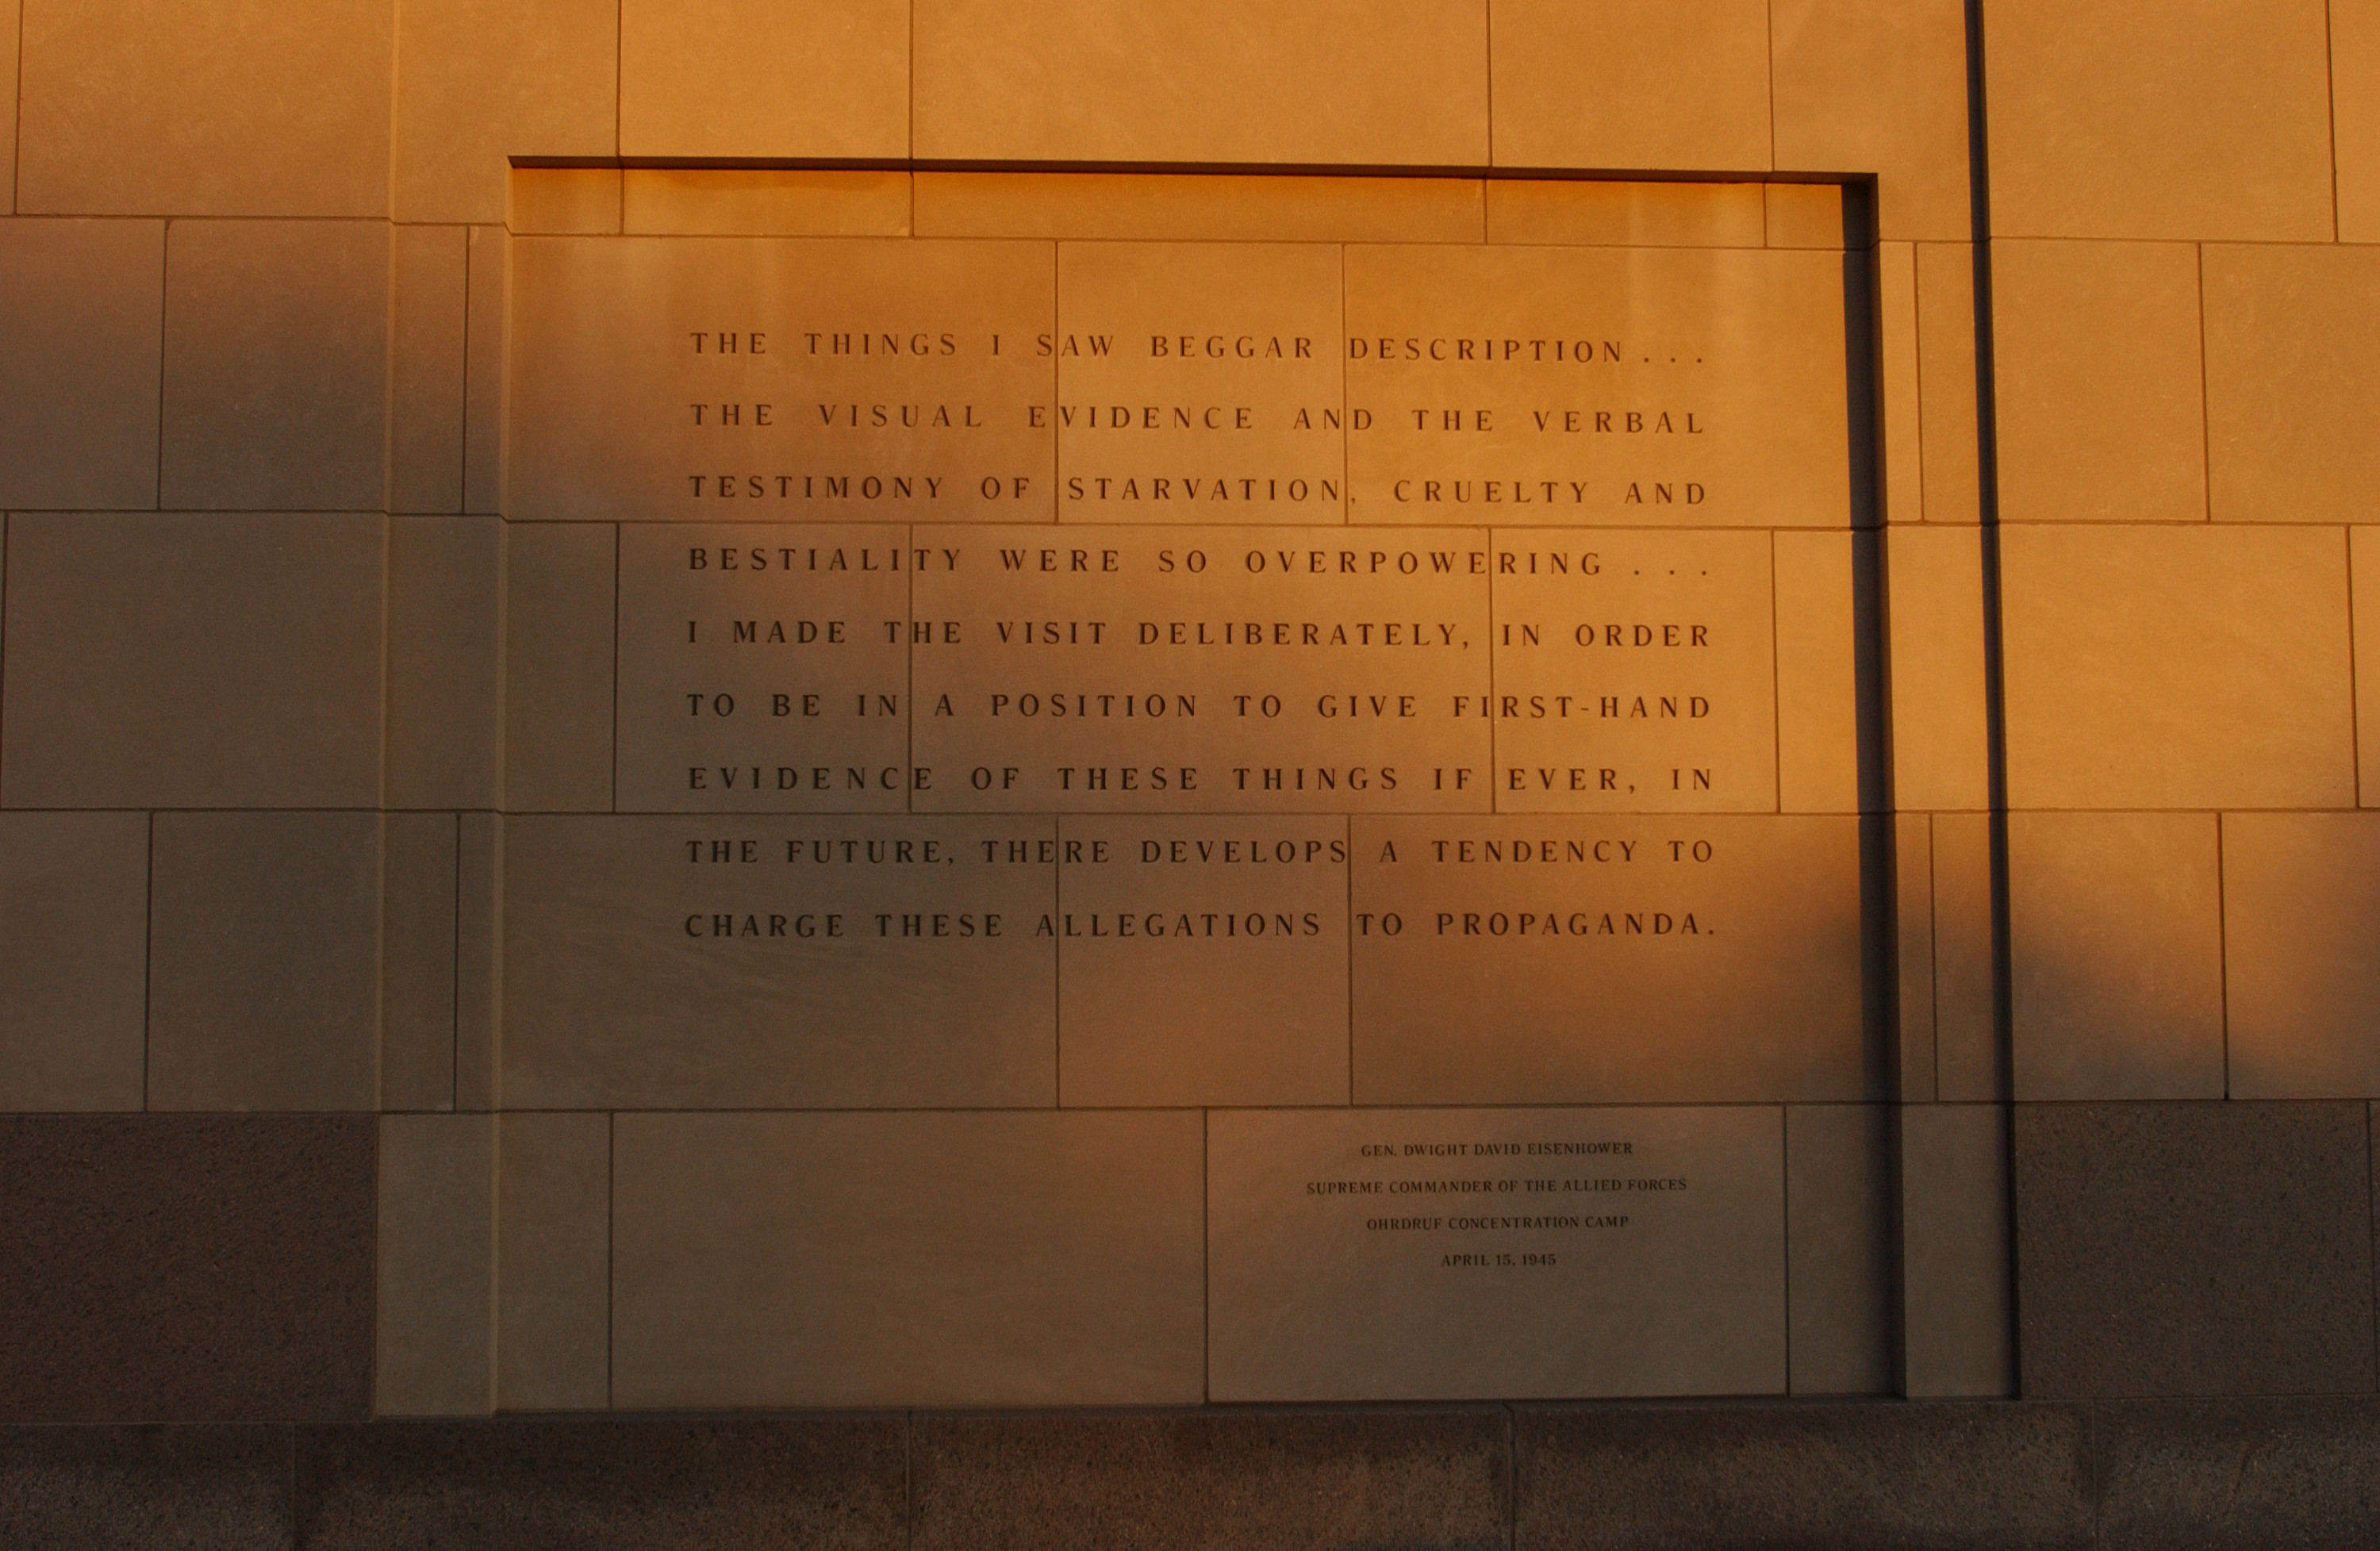 The quotation by Gen. Dwight David Eisenhower on the exterior of the Hall of Remembrance facing Eisenhower Plaza,  the U.S. Holocaust Memorial Museum.